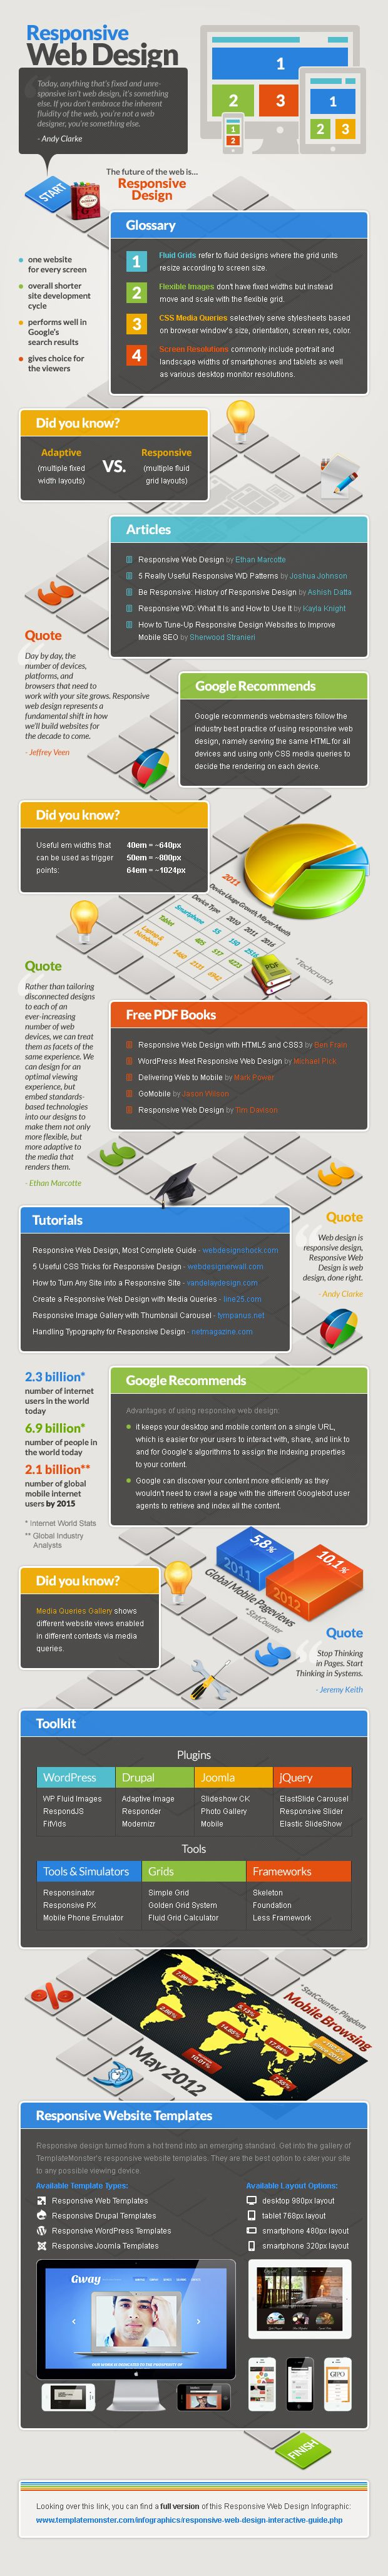 Key Info About Responsive Web Design | Infographic